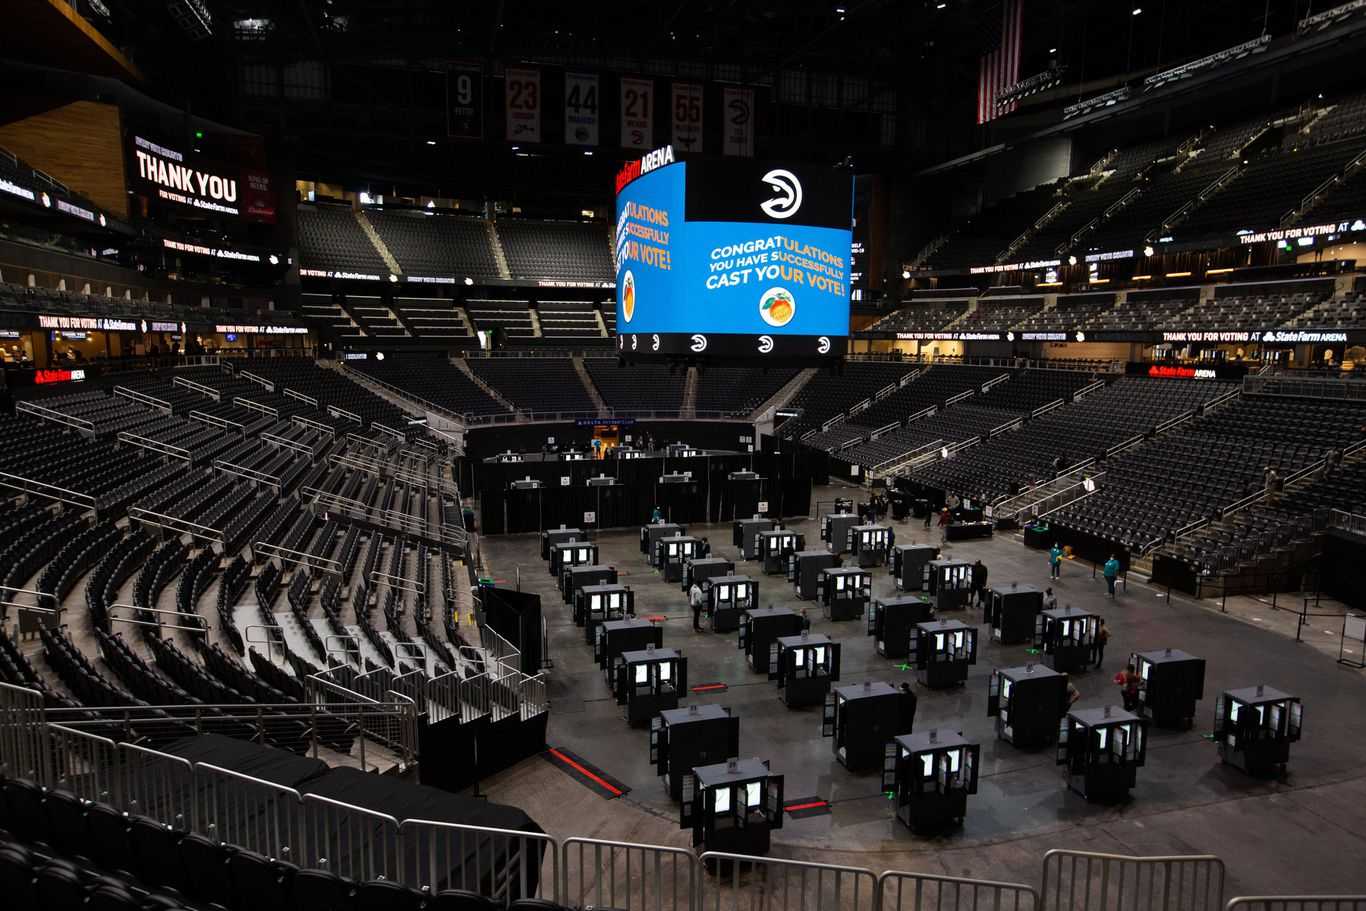 Over 40 sports venues across 20 states will function as polling centers for the 2020 election thumbnail